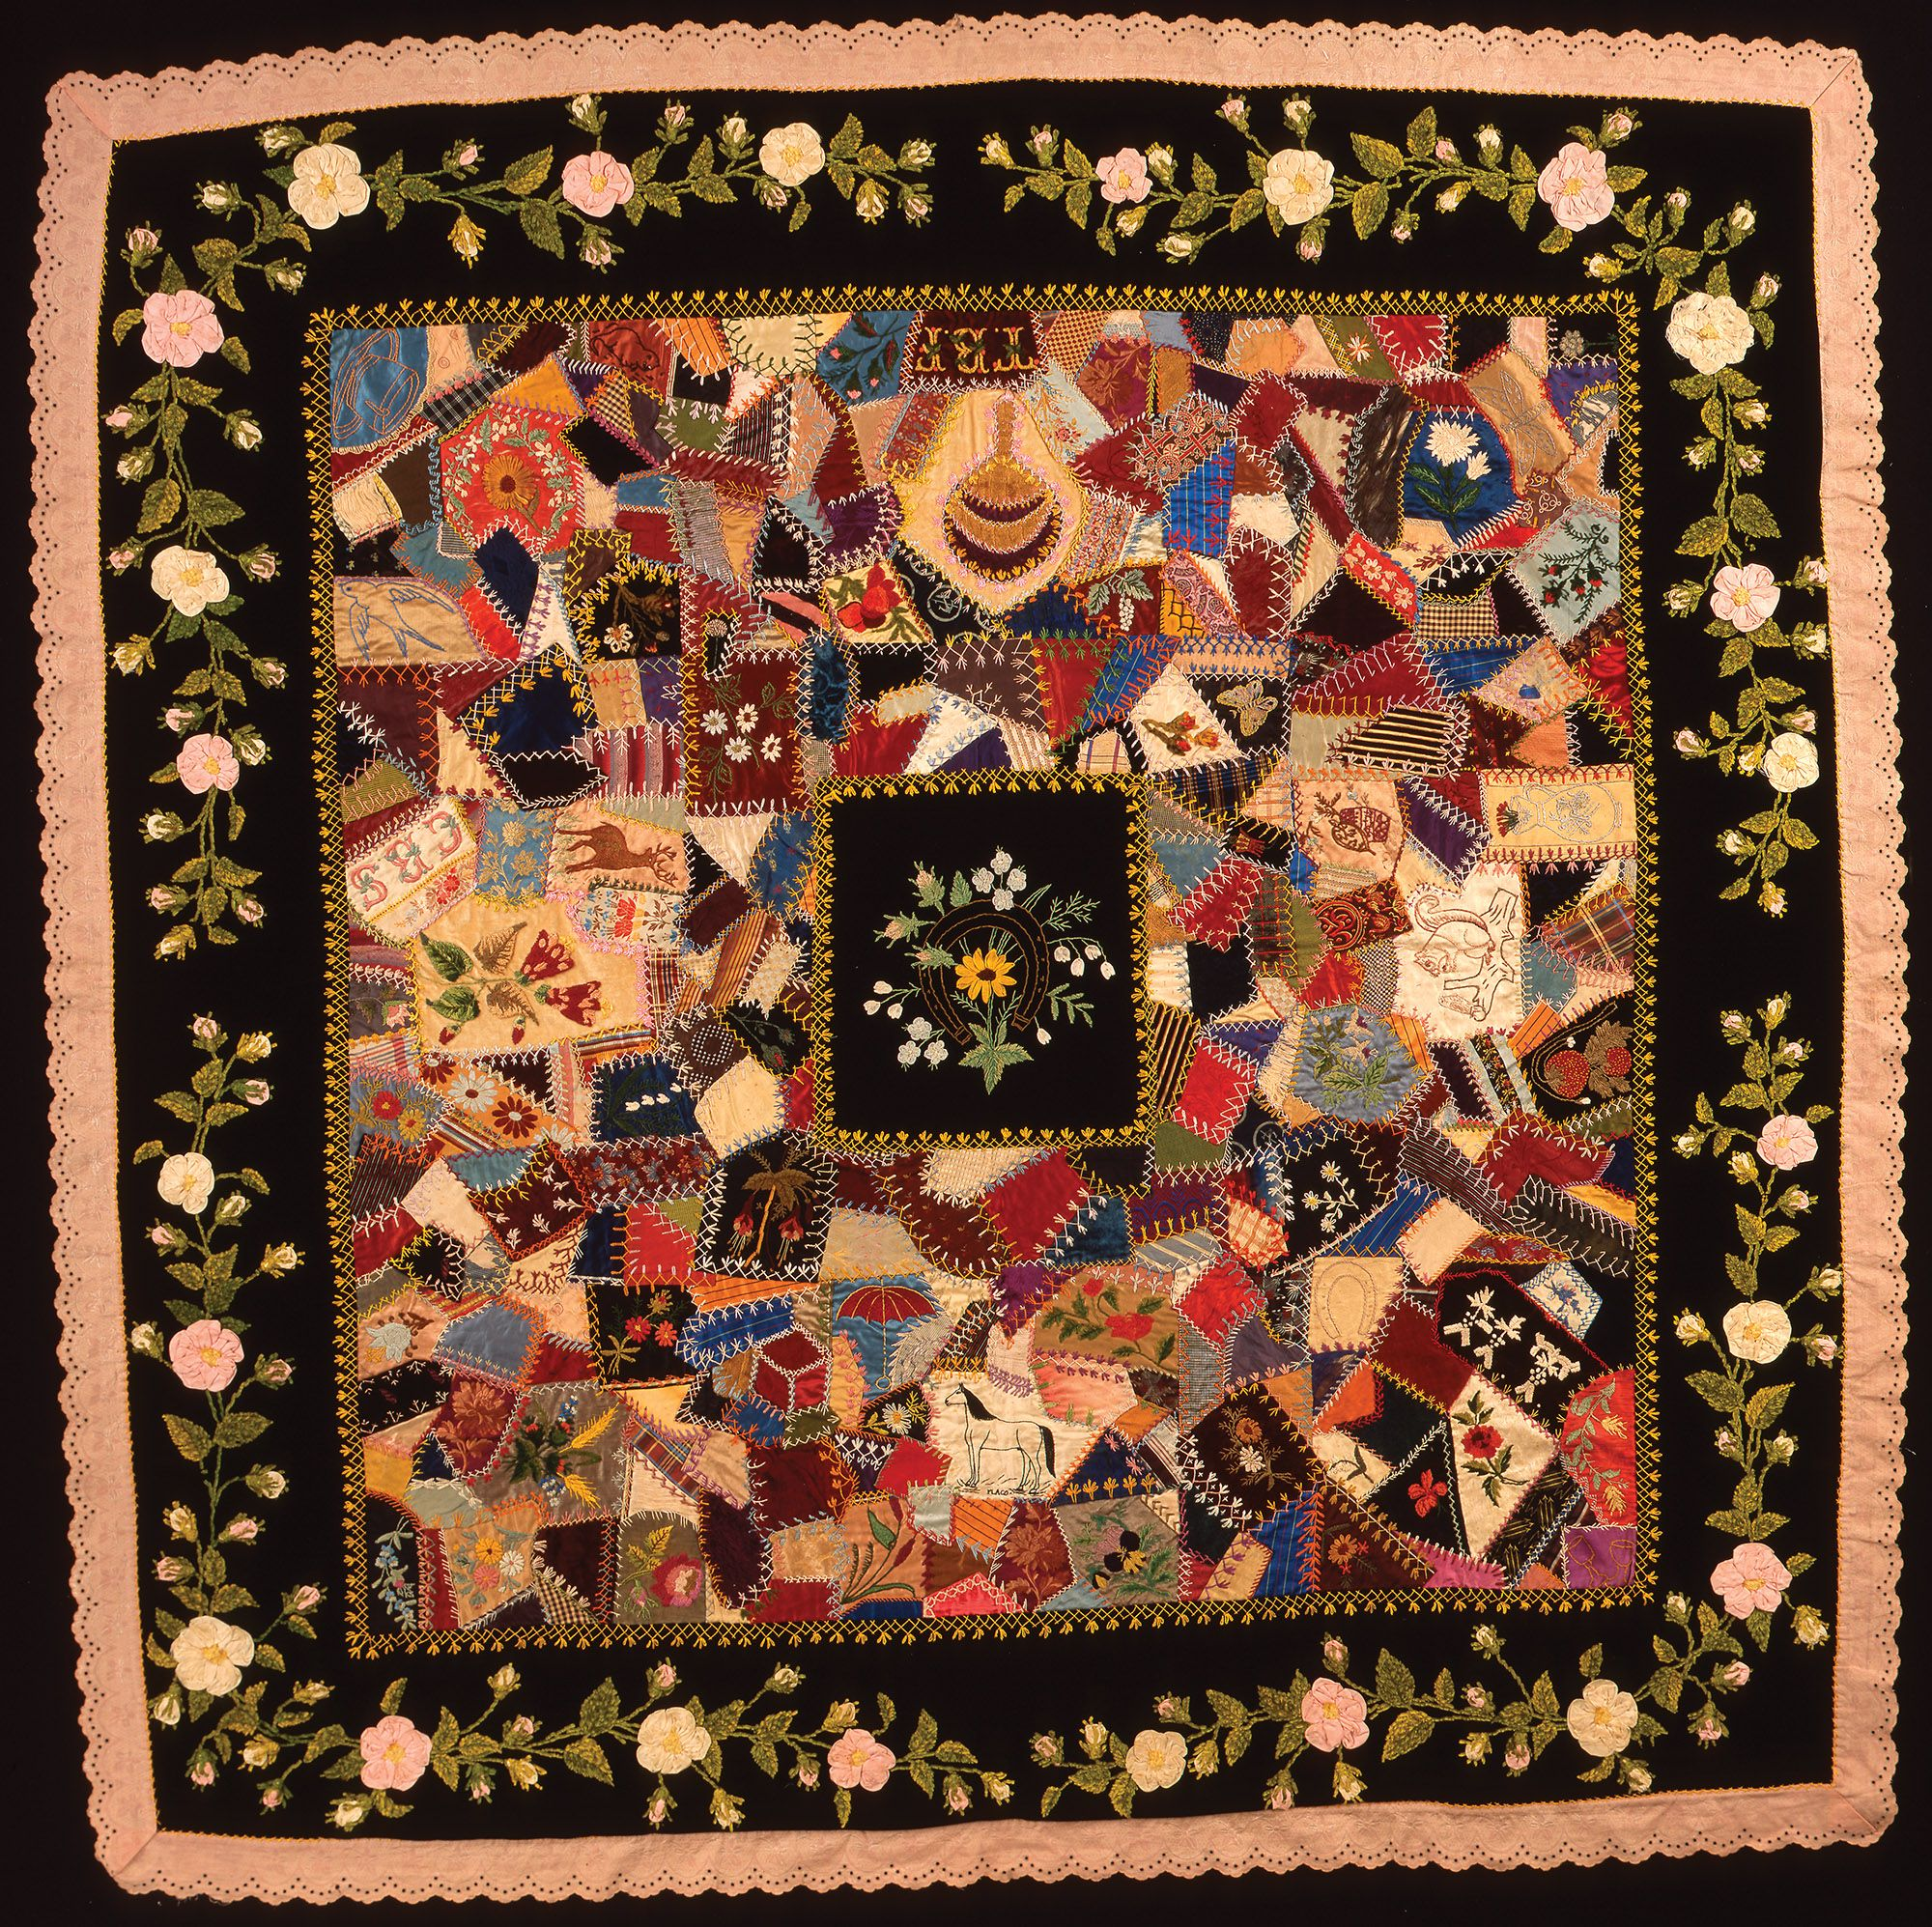 Crazy Quilts And Mad Women International Quilt Museum Lincoln Ne In 2020 Victorian Quilts Crazy Quilts Quilts